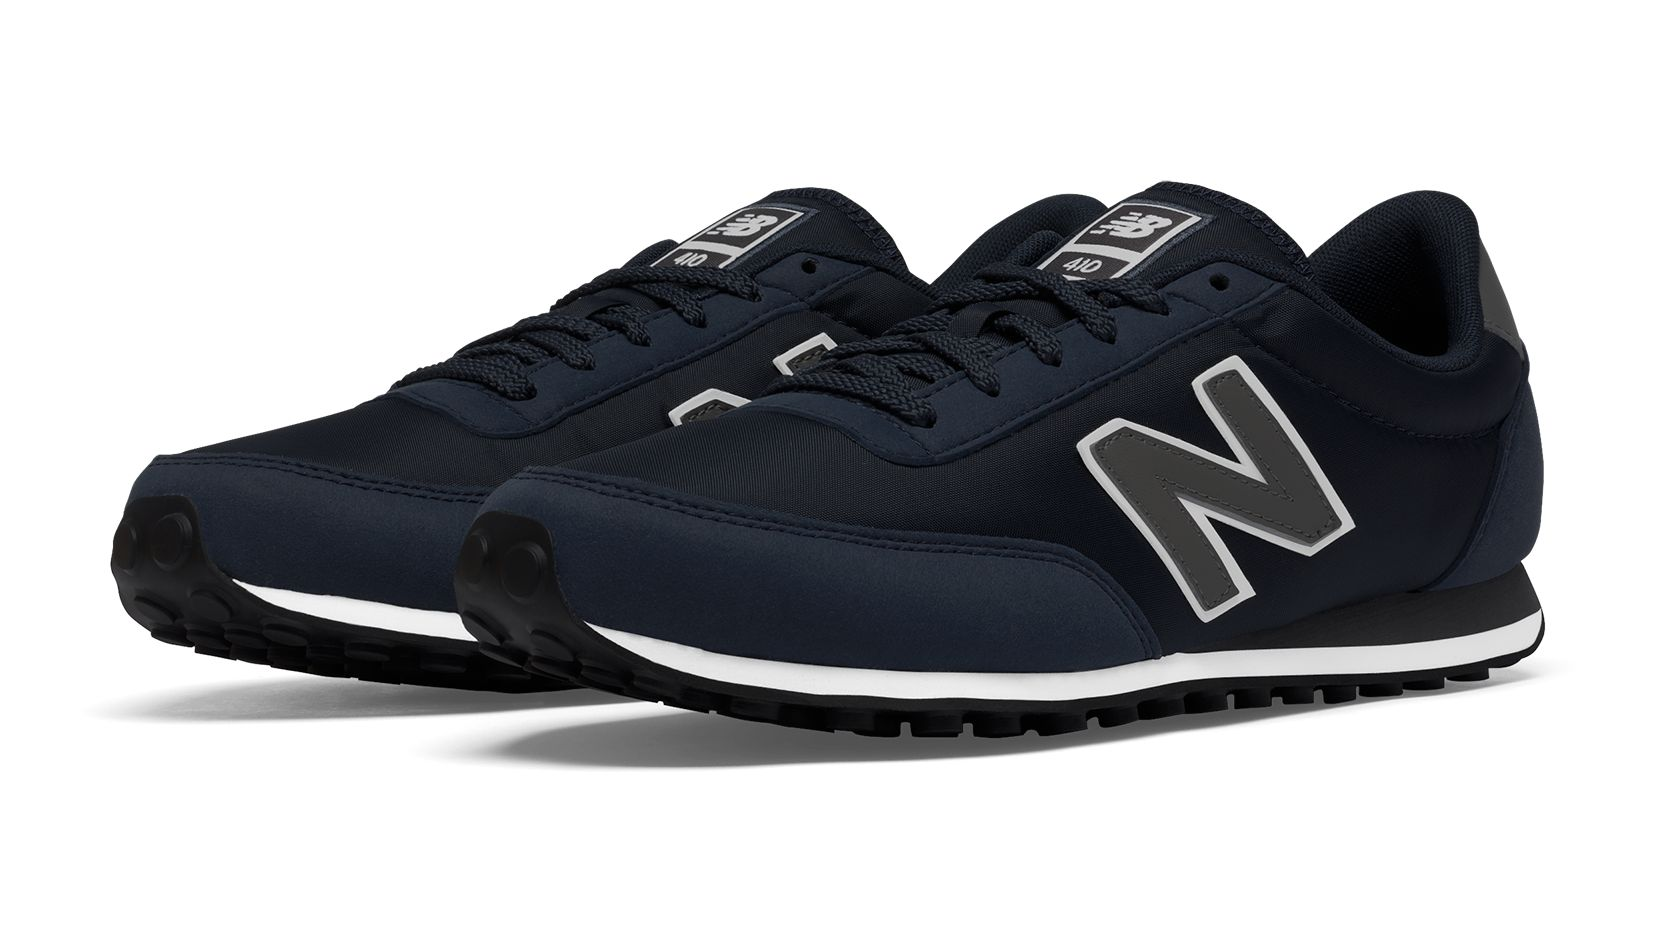 New Balance 410 - Unisex Casual | New Balance